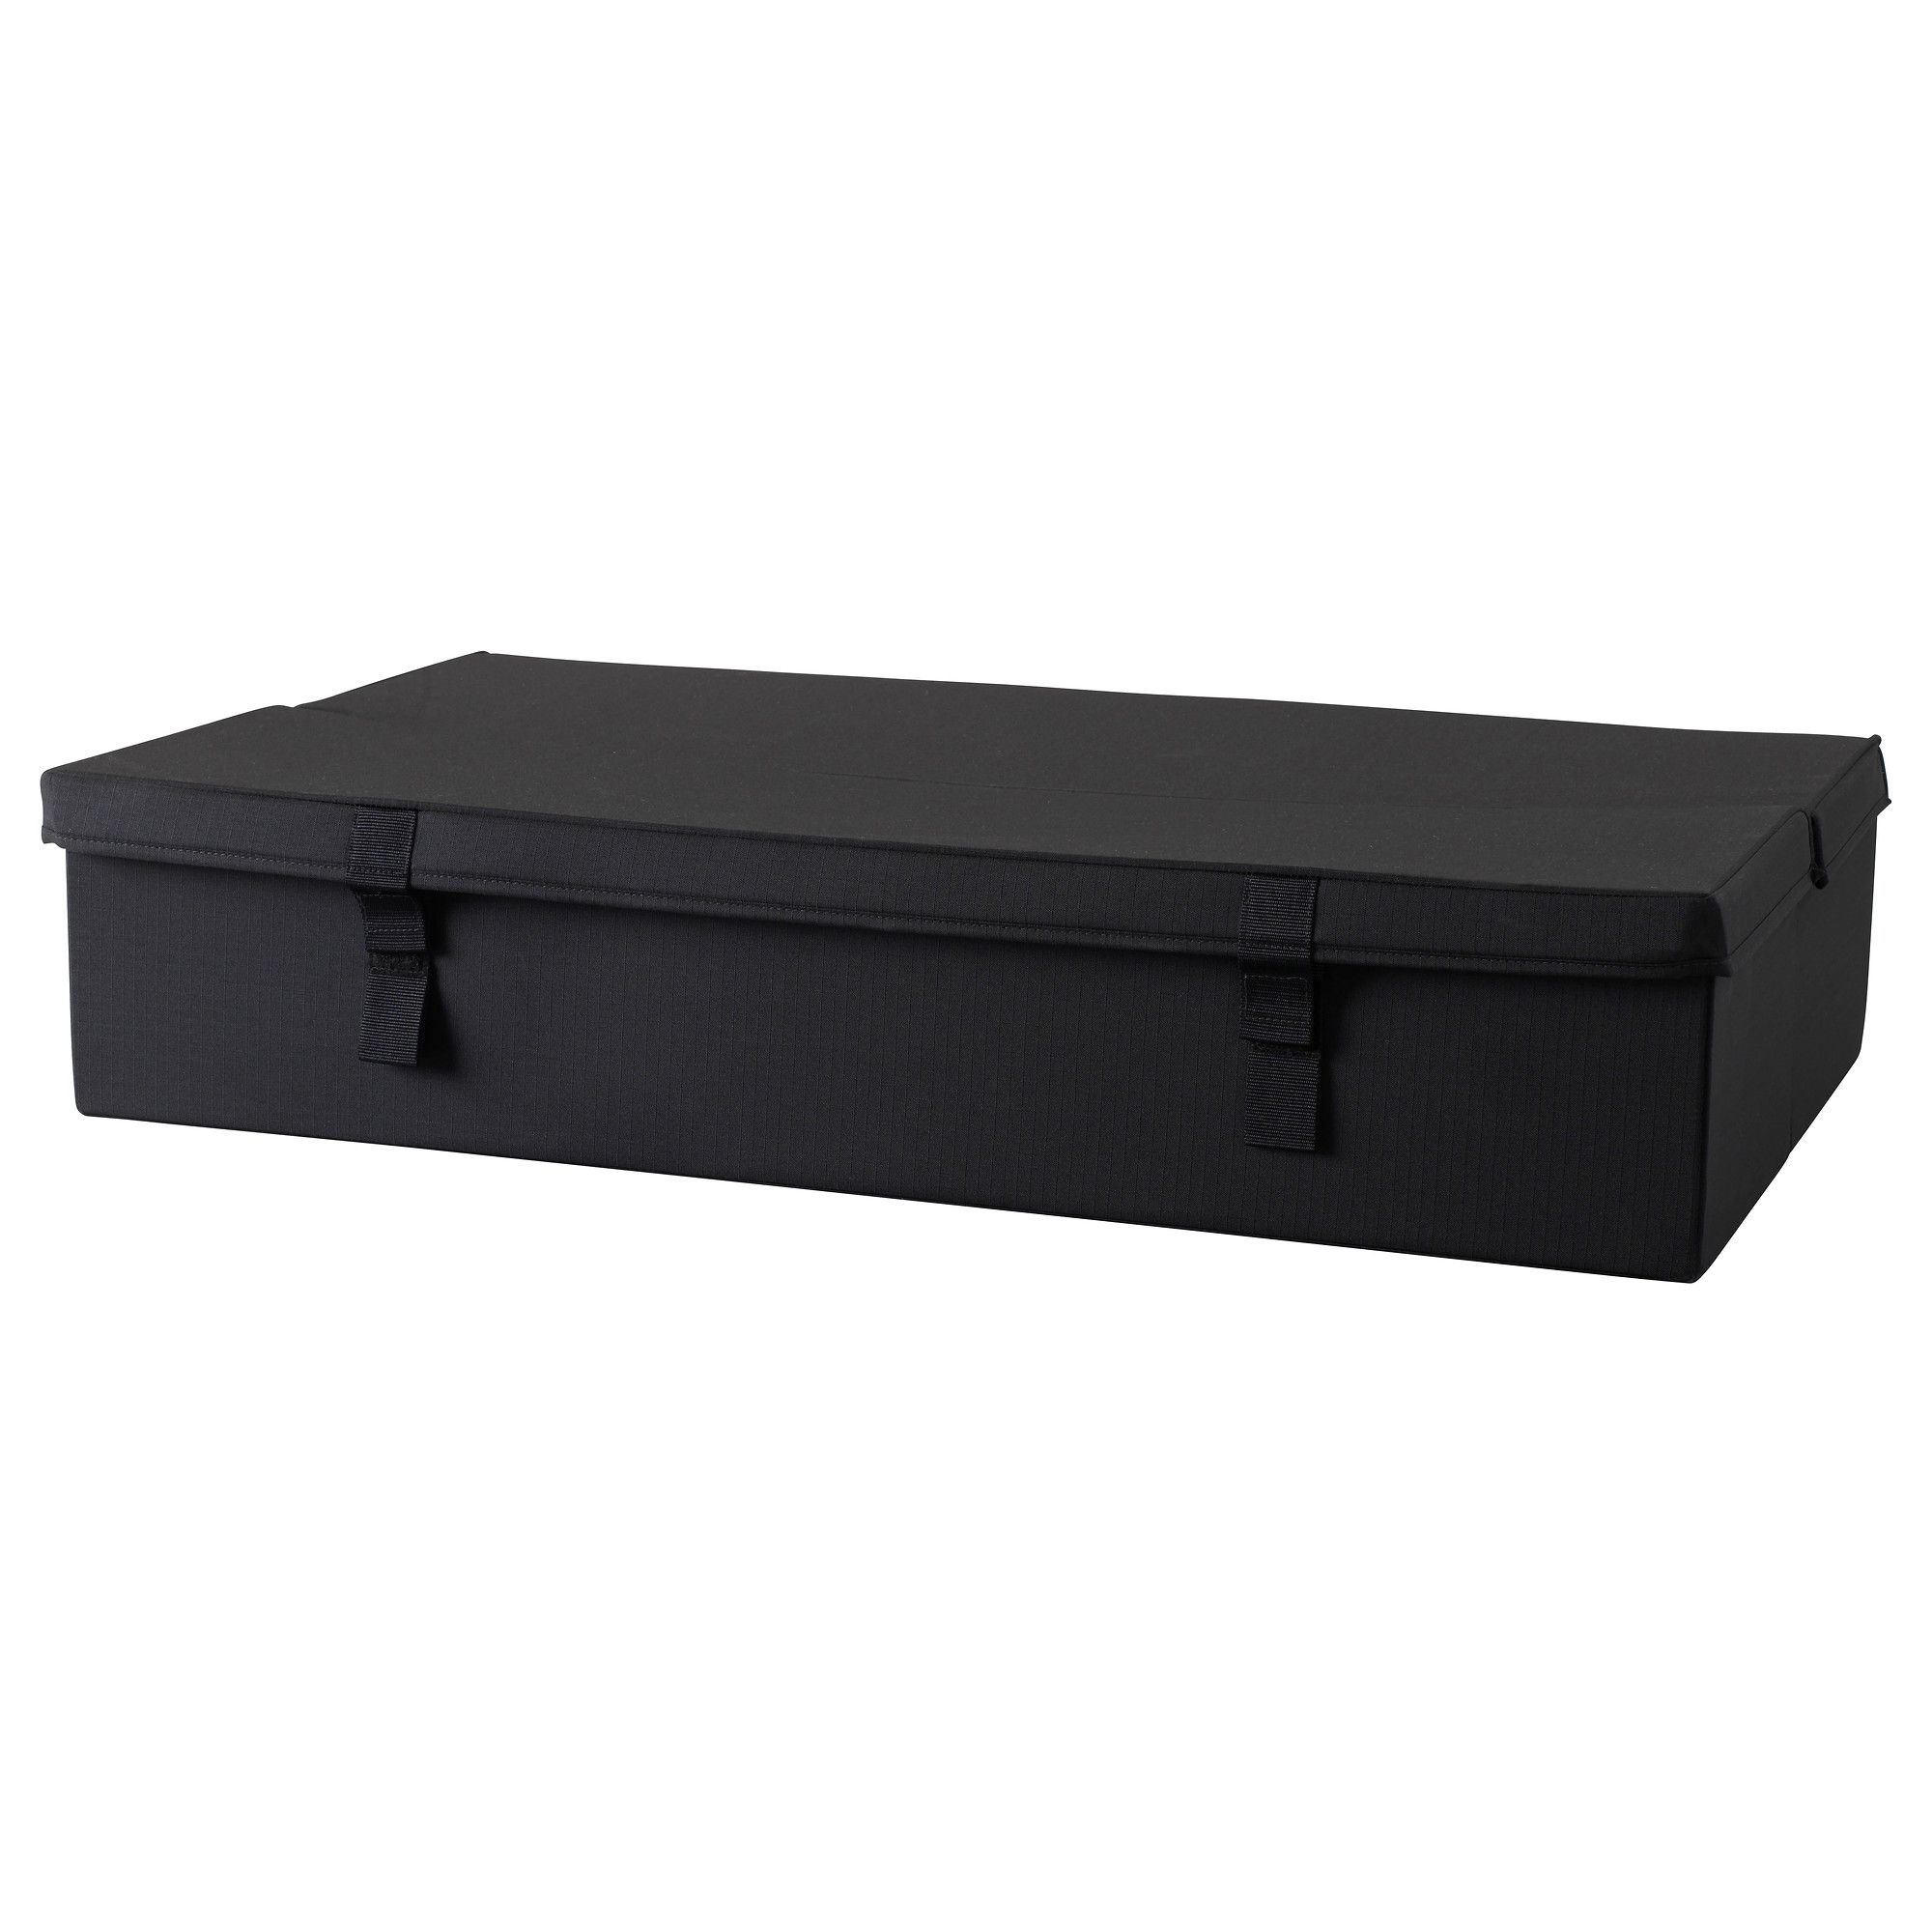 Systeme Accroche Tableau Amazing Beautiful Lycksele Rangement Pour Convertible